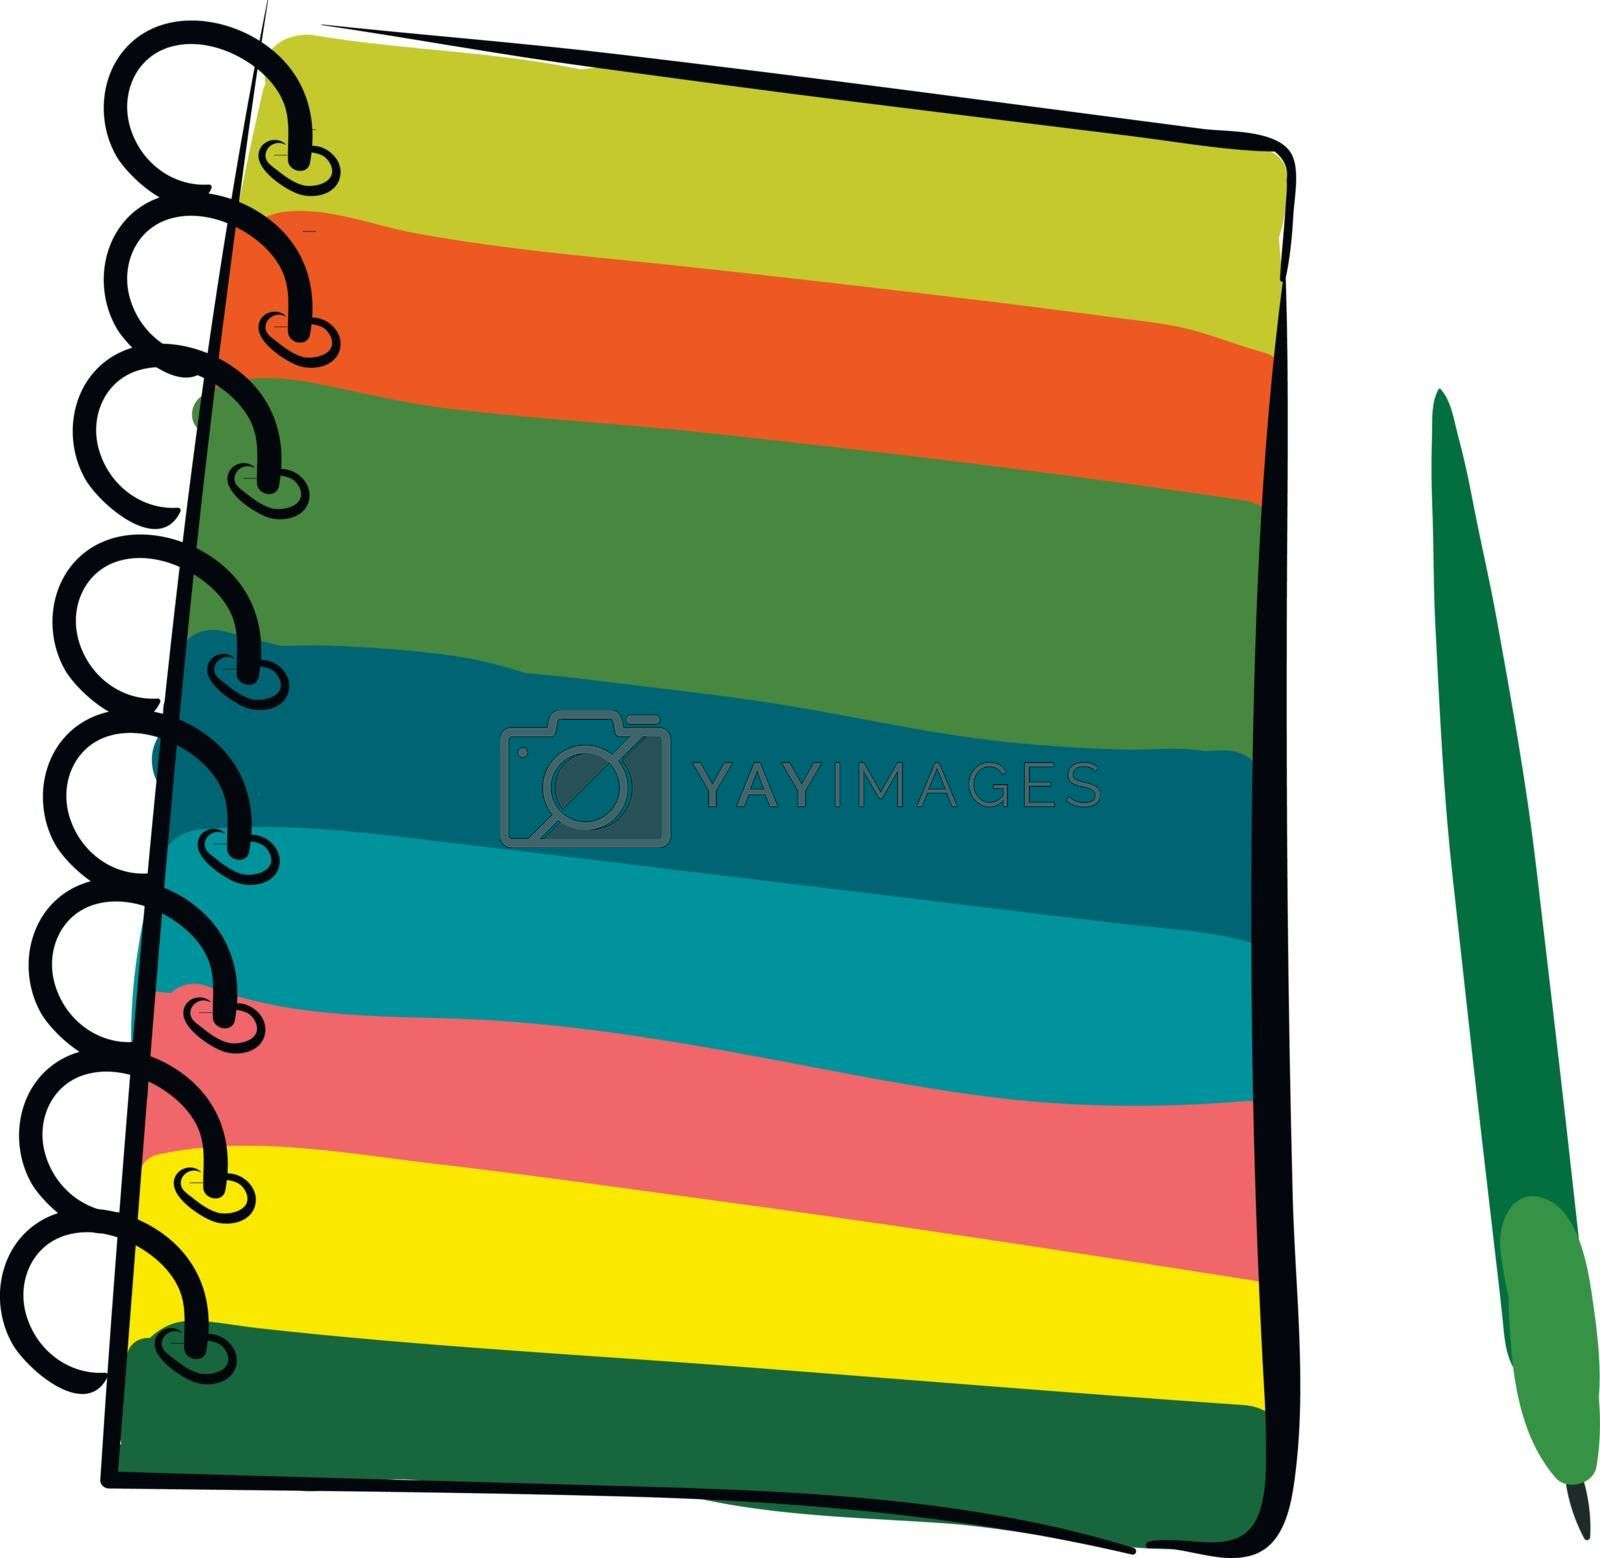 Royalty free image of Clipart of a multi-colored wire-bound notebook and a green-color by Morphart